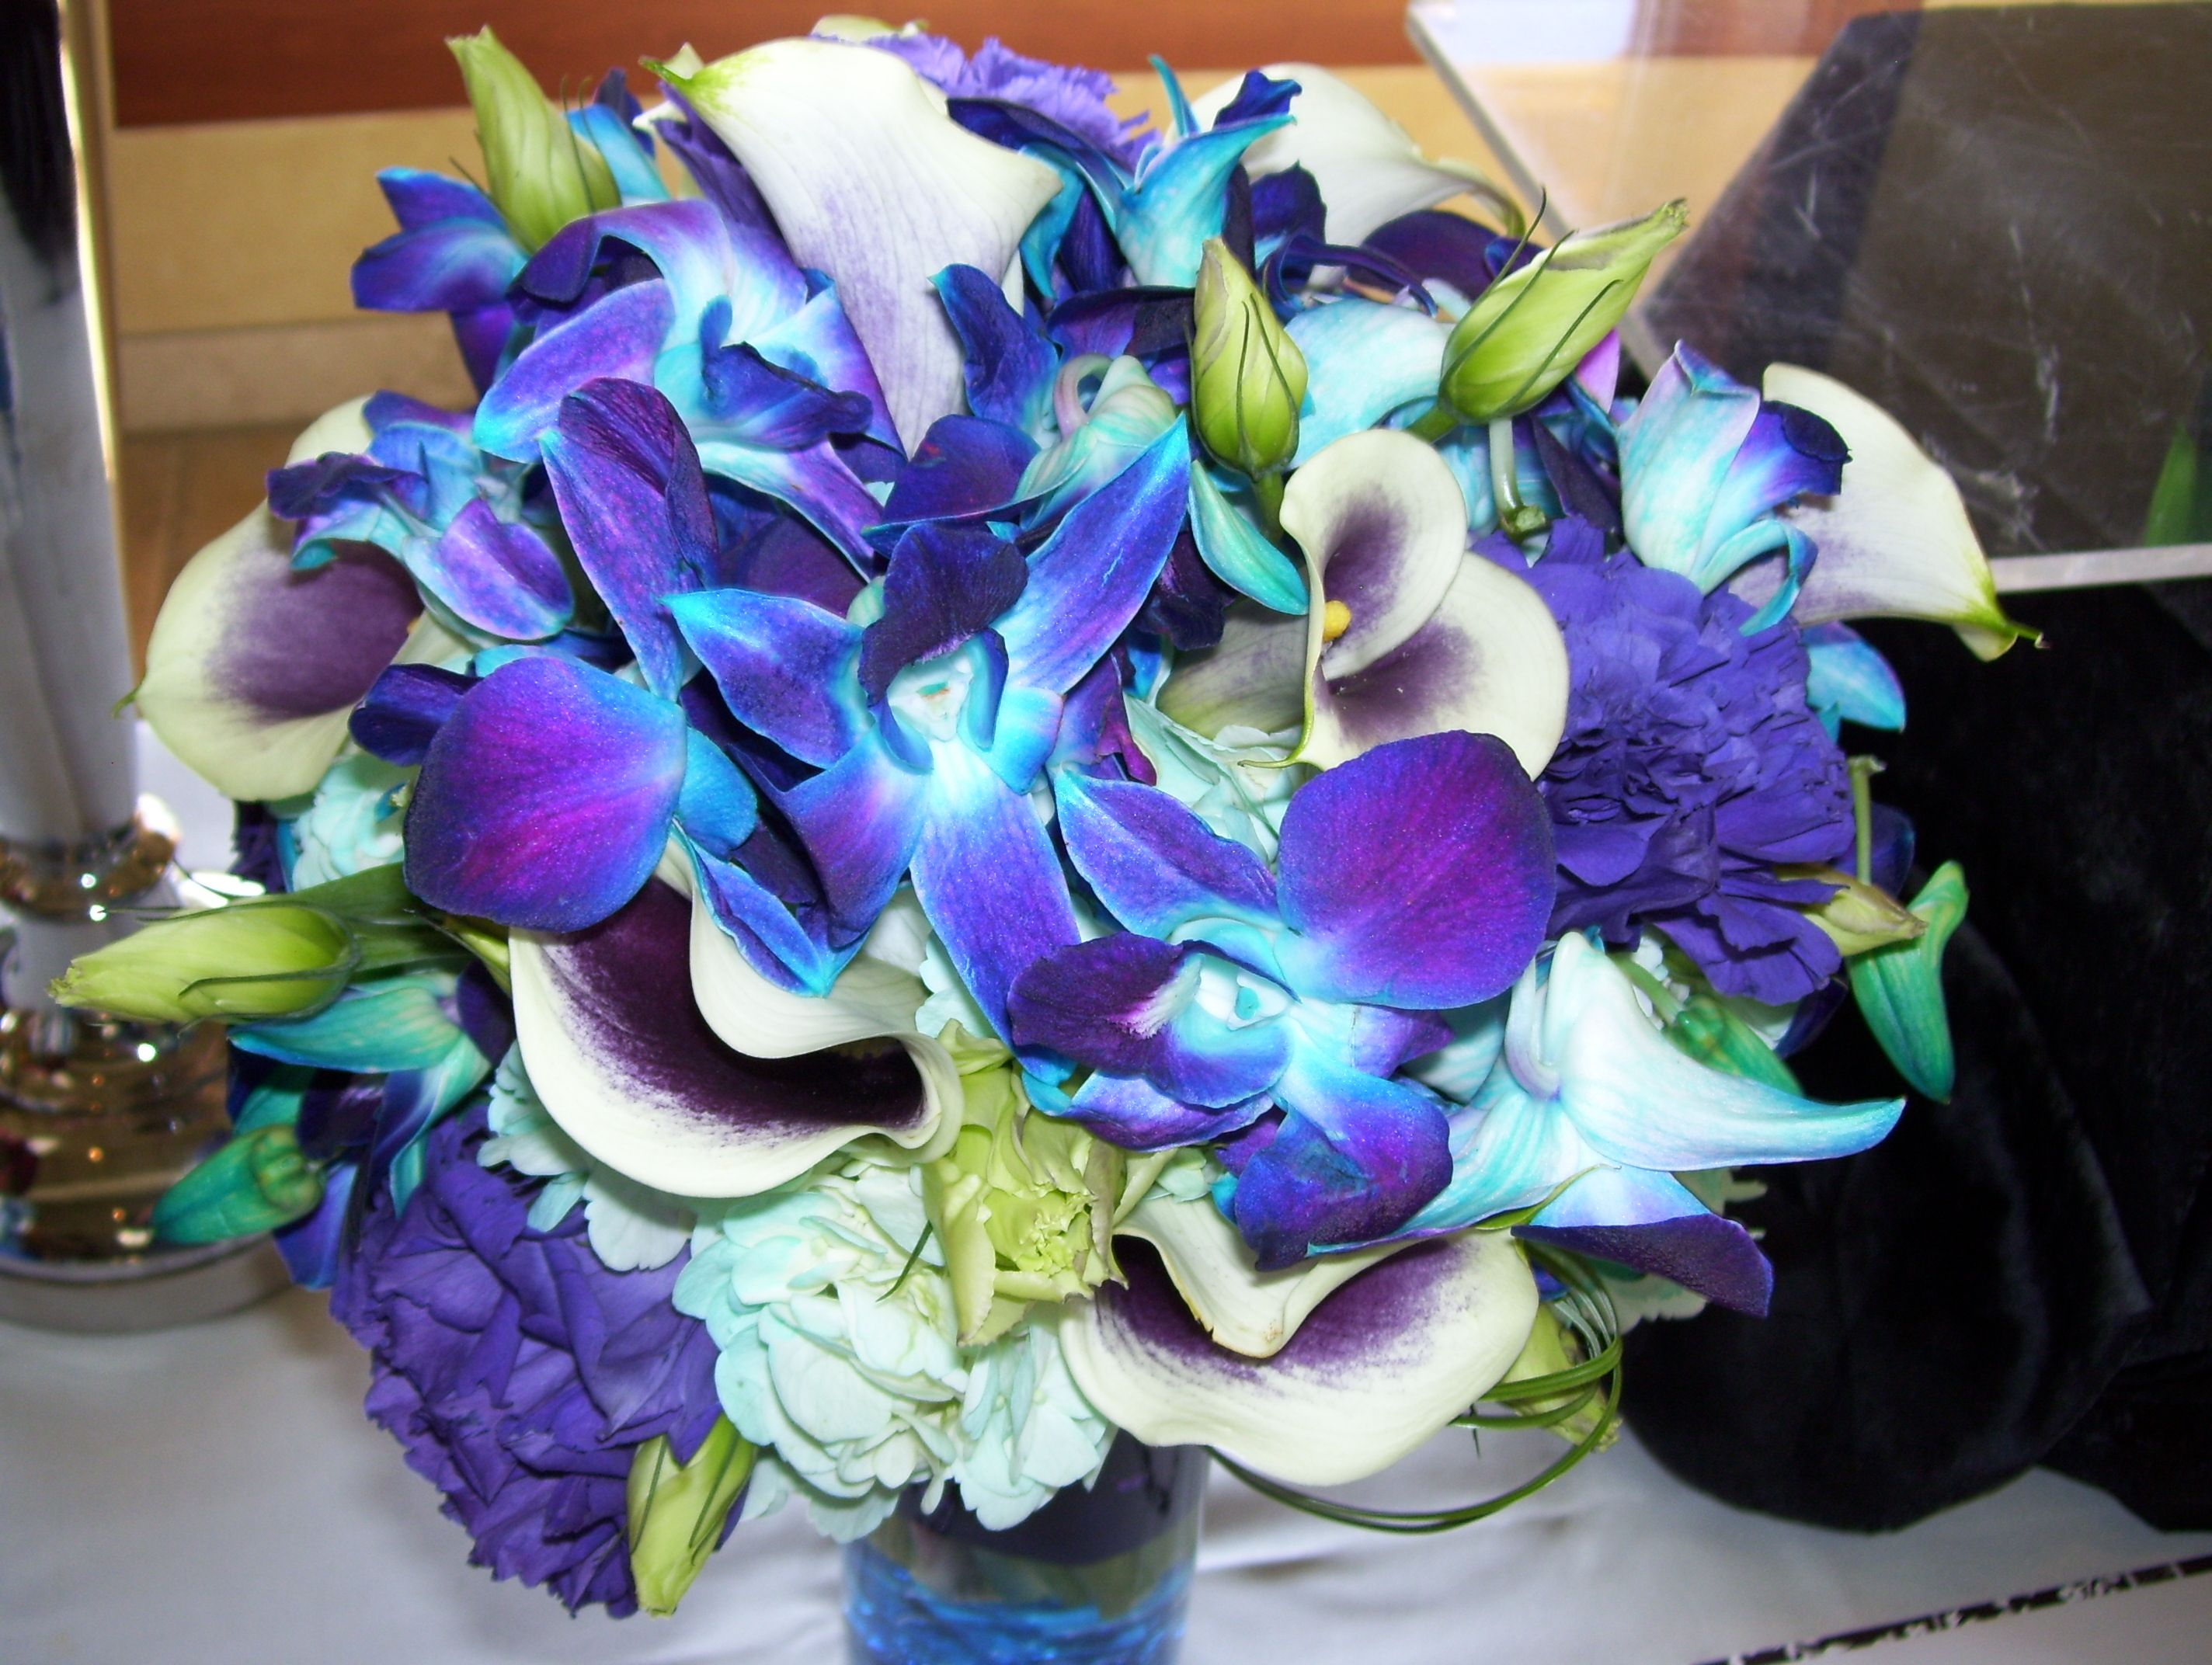 Pin by sierra wright on for when i say i do pinterest florists